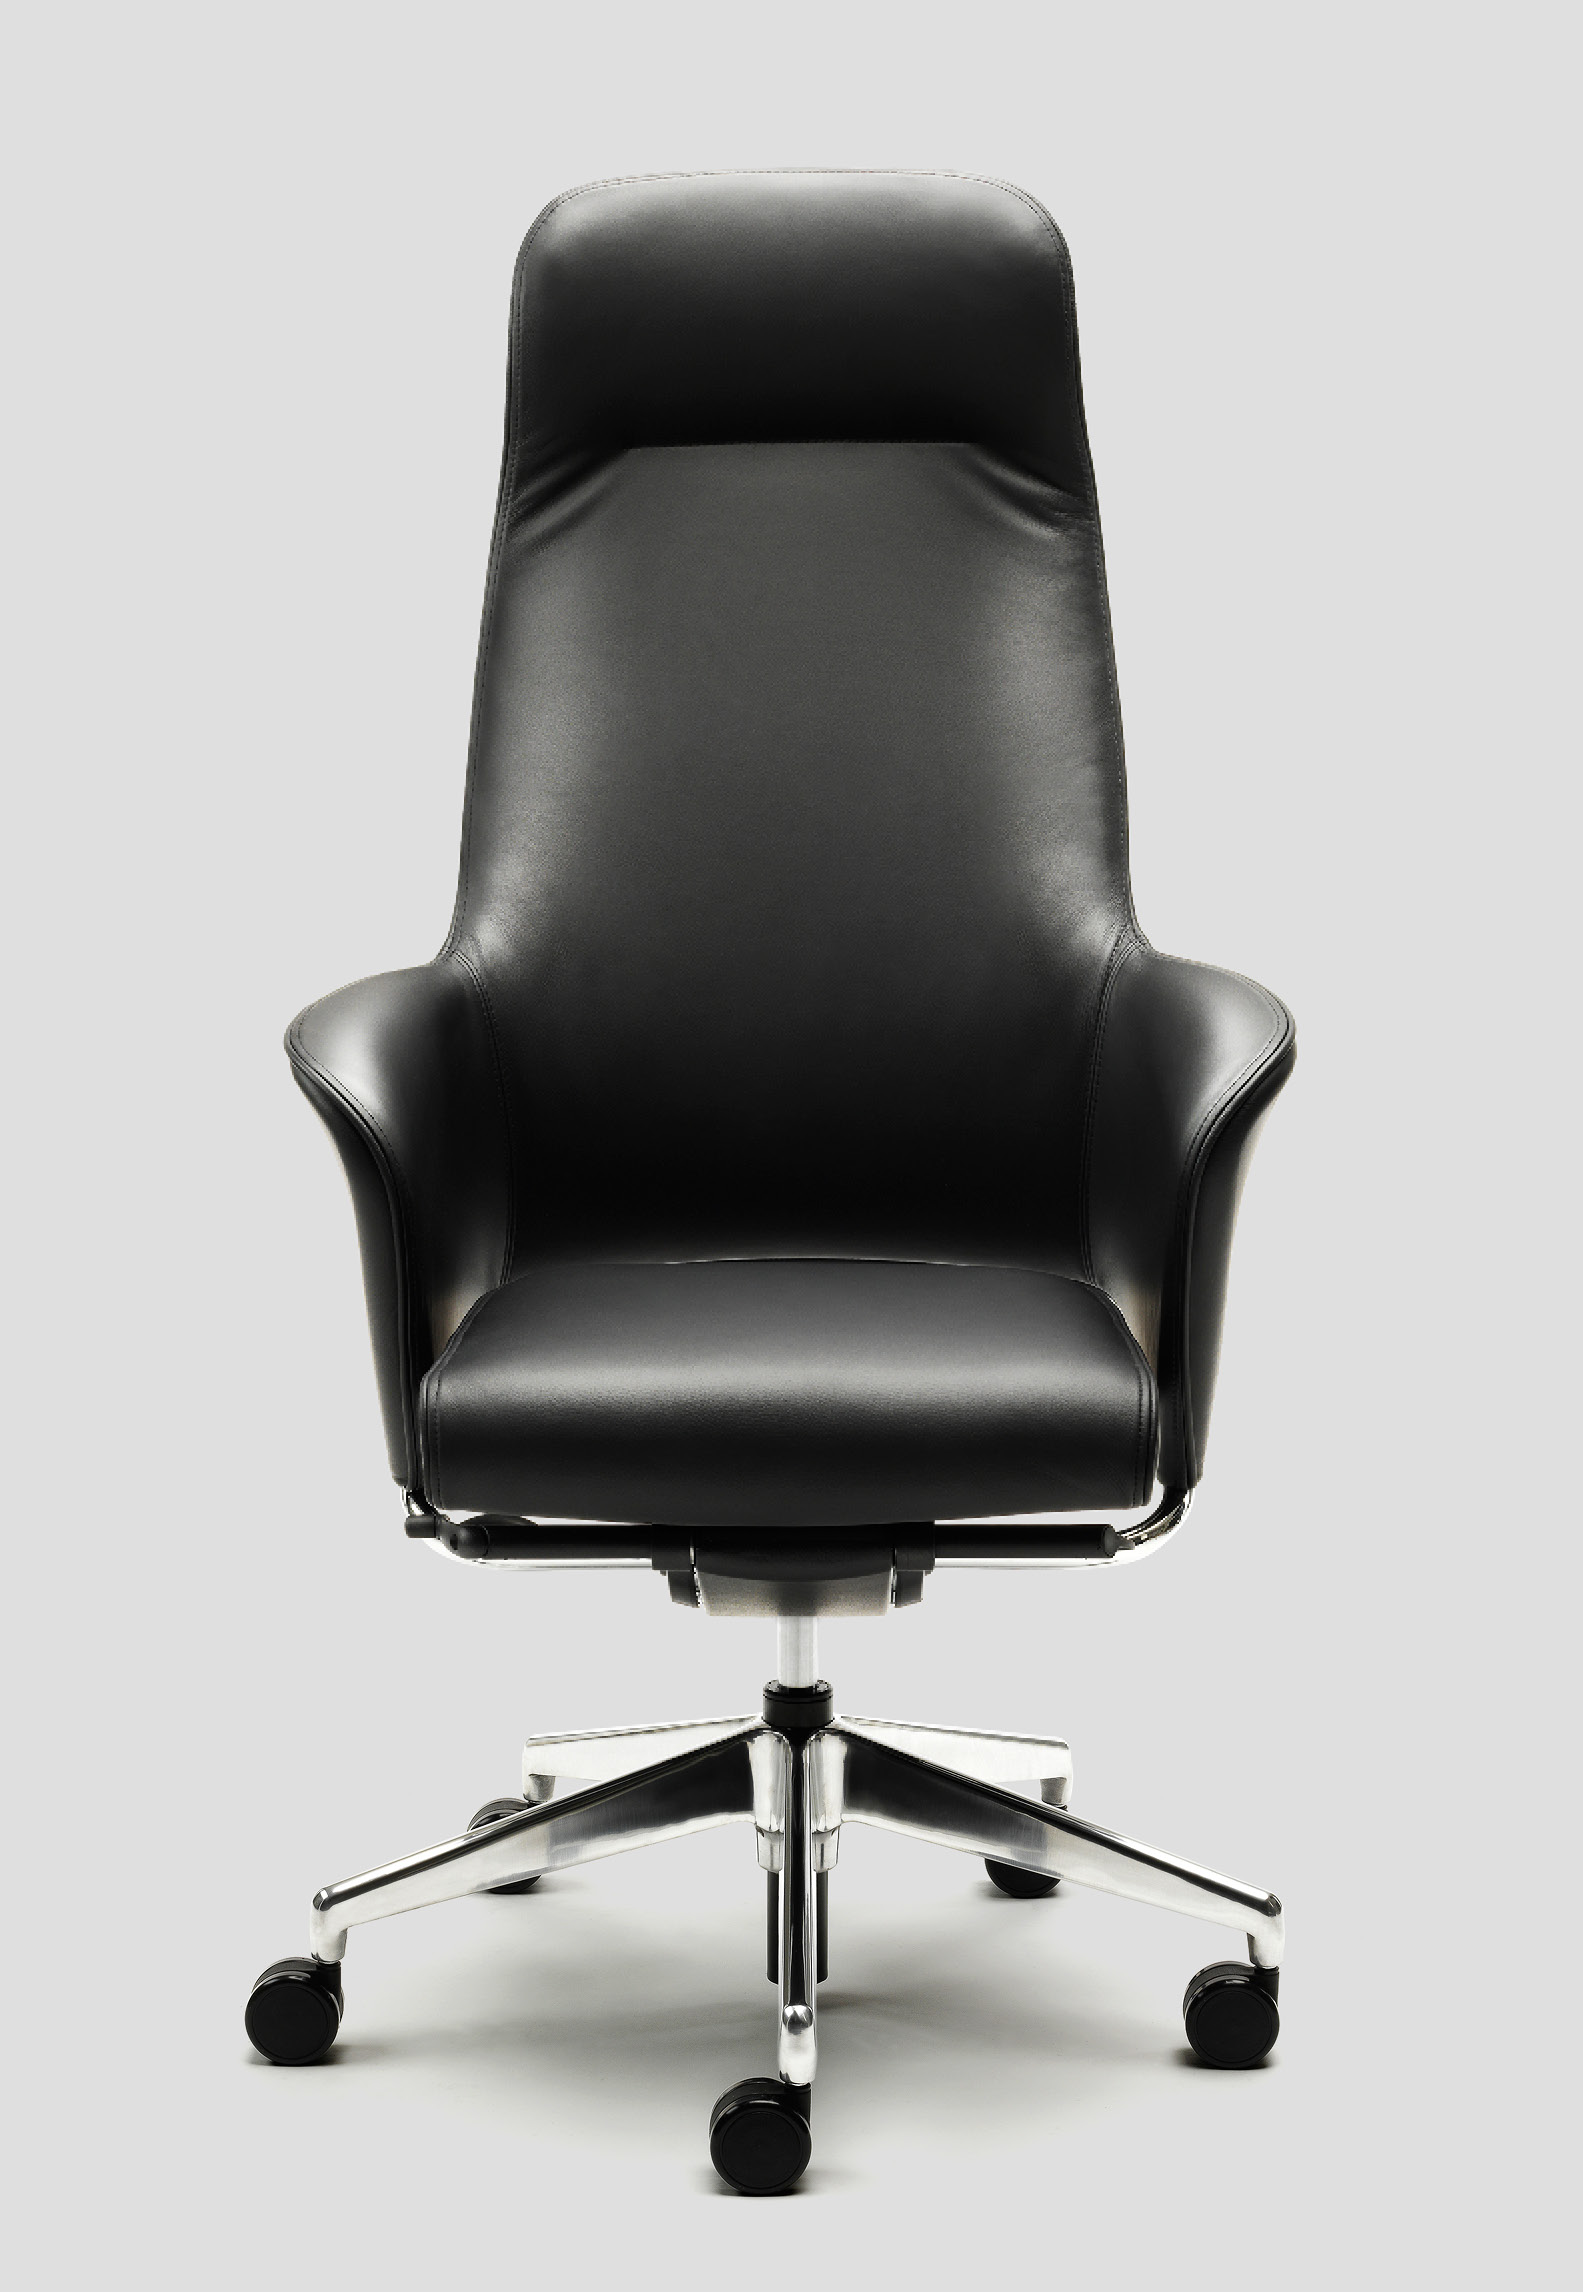 designer executive chair cheap dorm chairs office uk